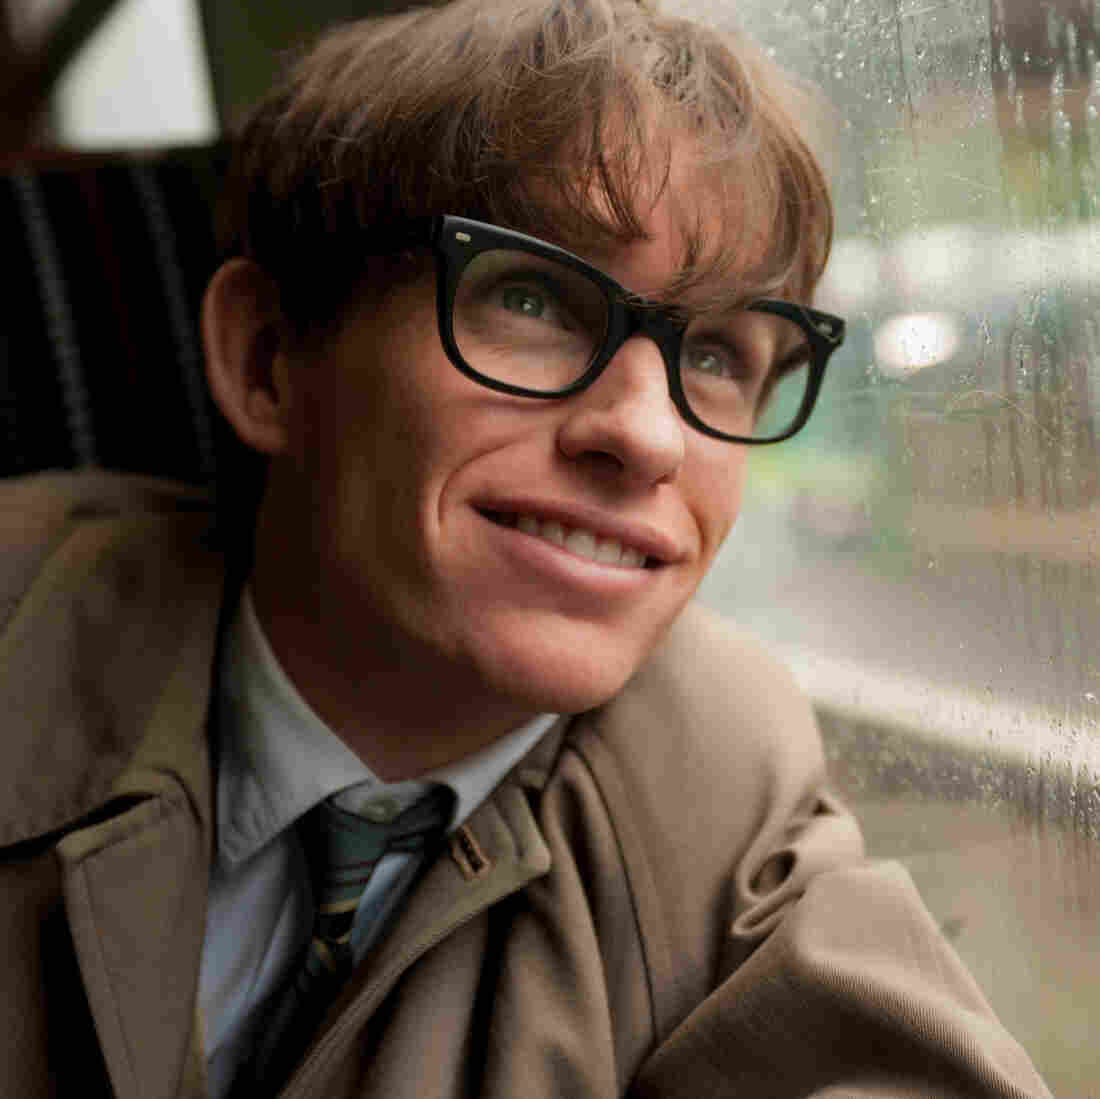 Eddie Redmayne plays Stephen Hawking in director James Marsh's The Theory of Everything.